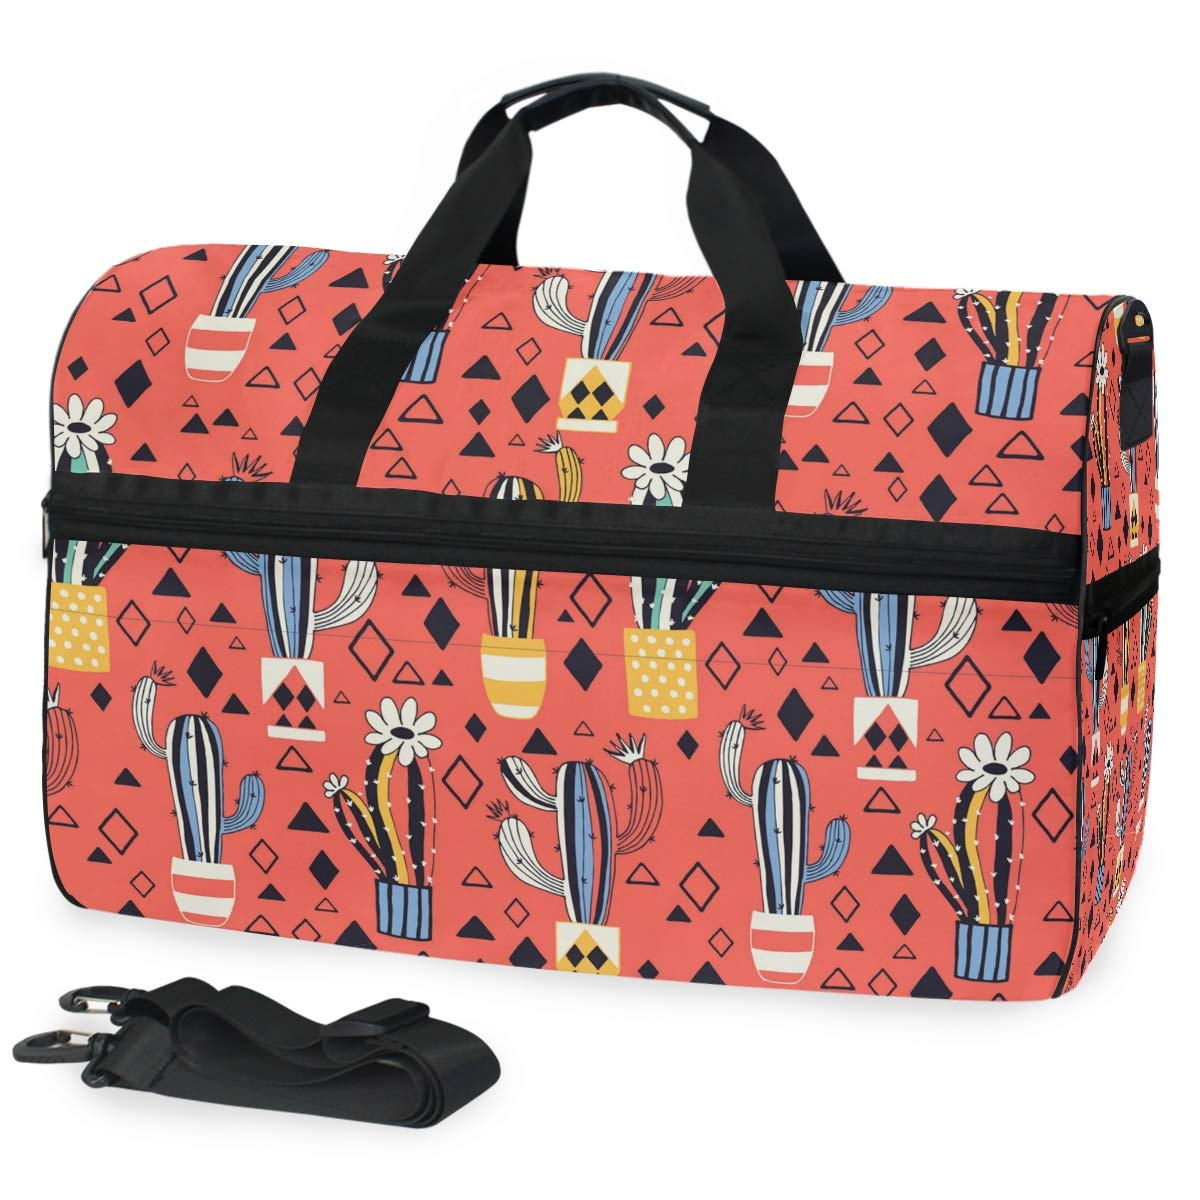 Diamond Cactus Red Background Large Travel Duffel Bag For Women Men Overnight Weekend Lightweight Luggage Bag